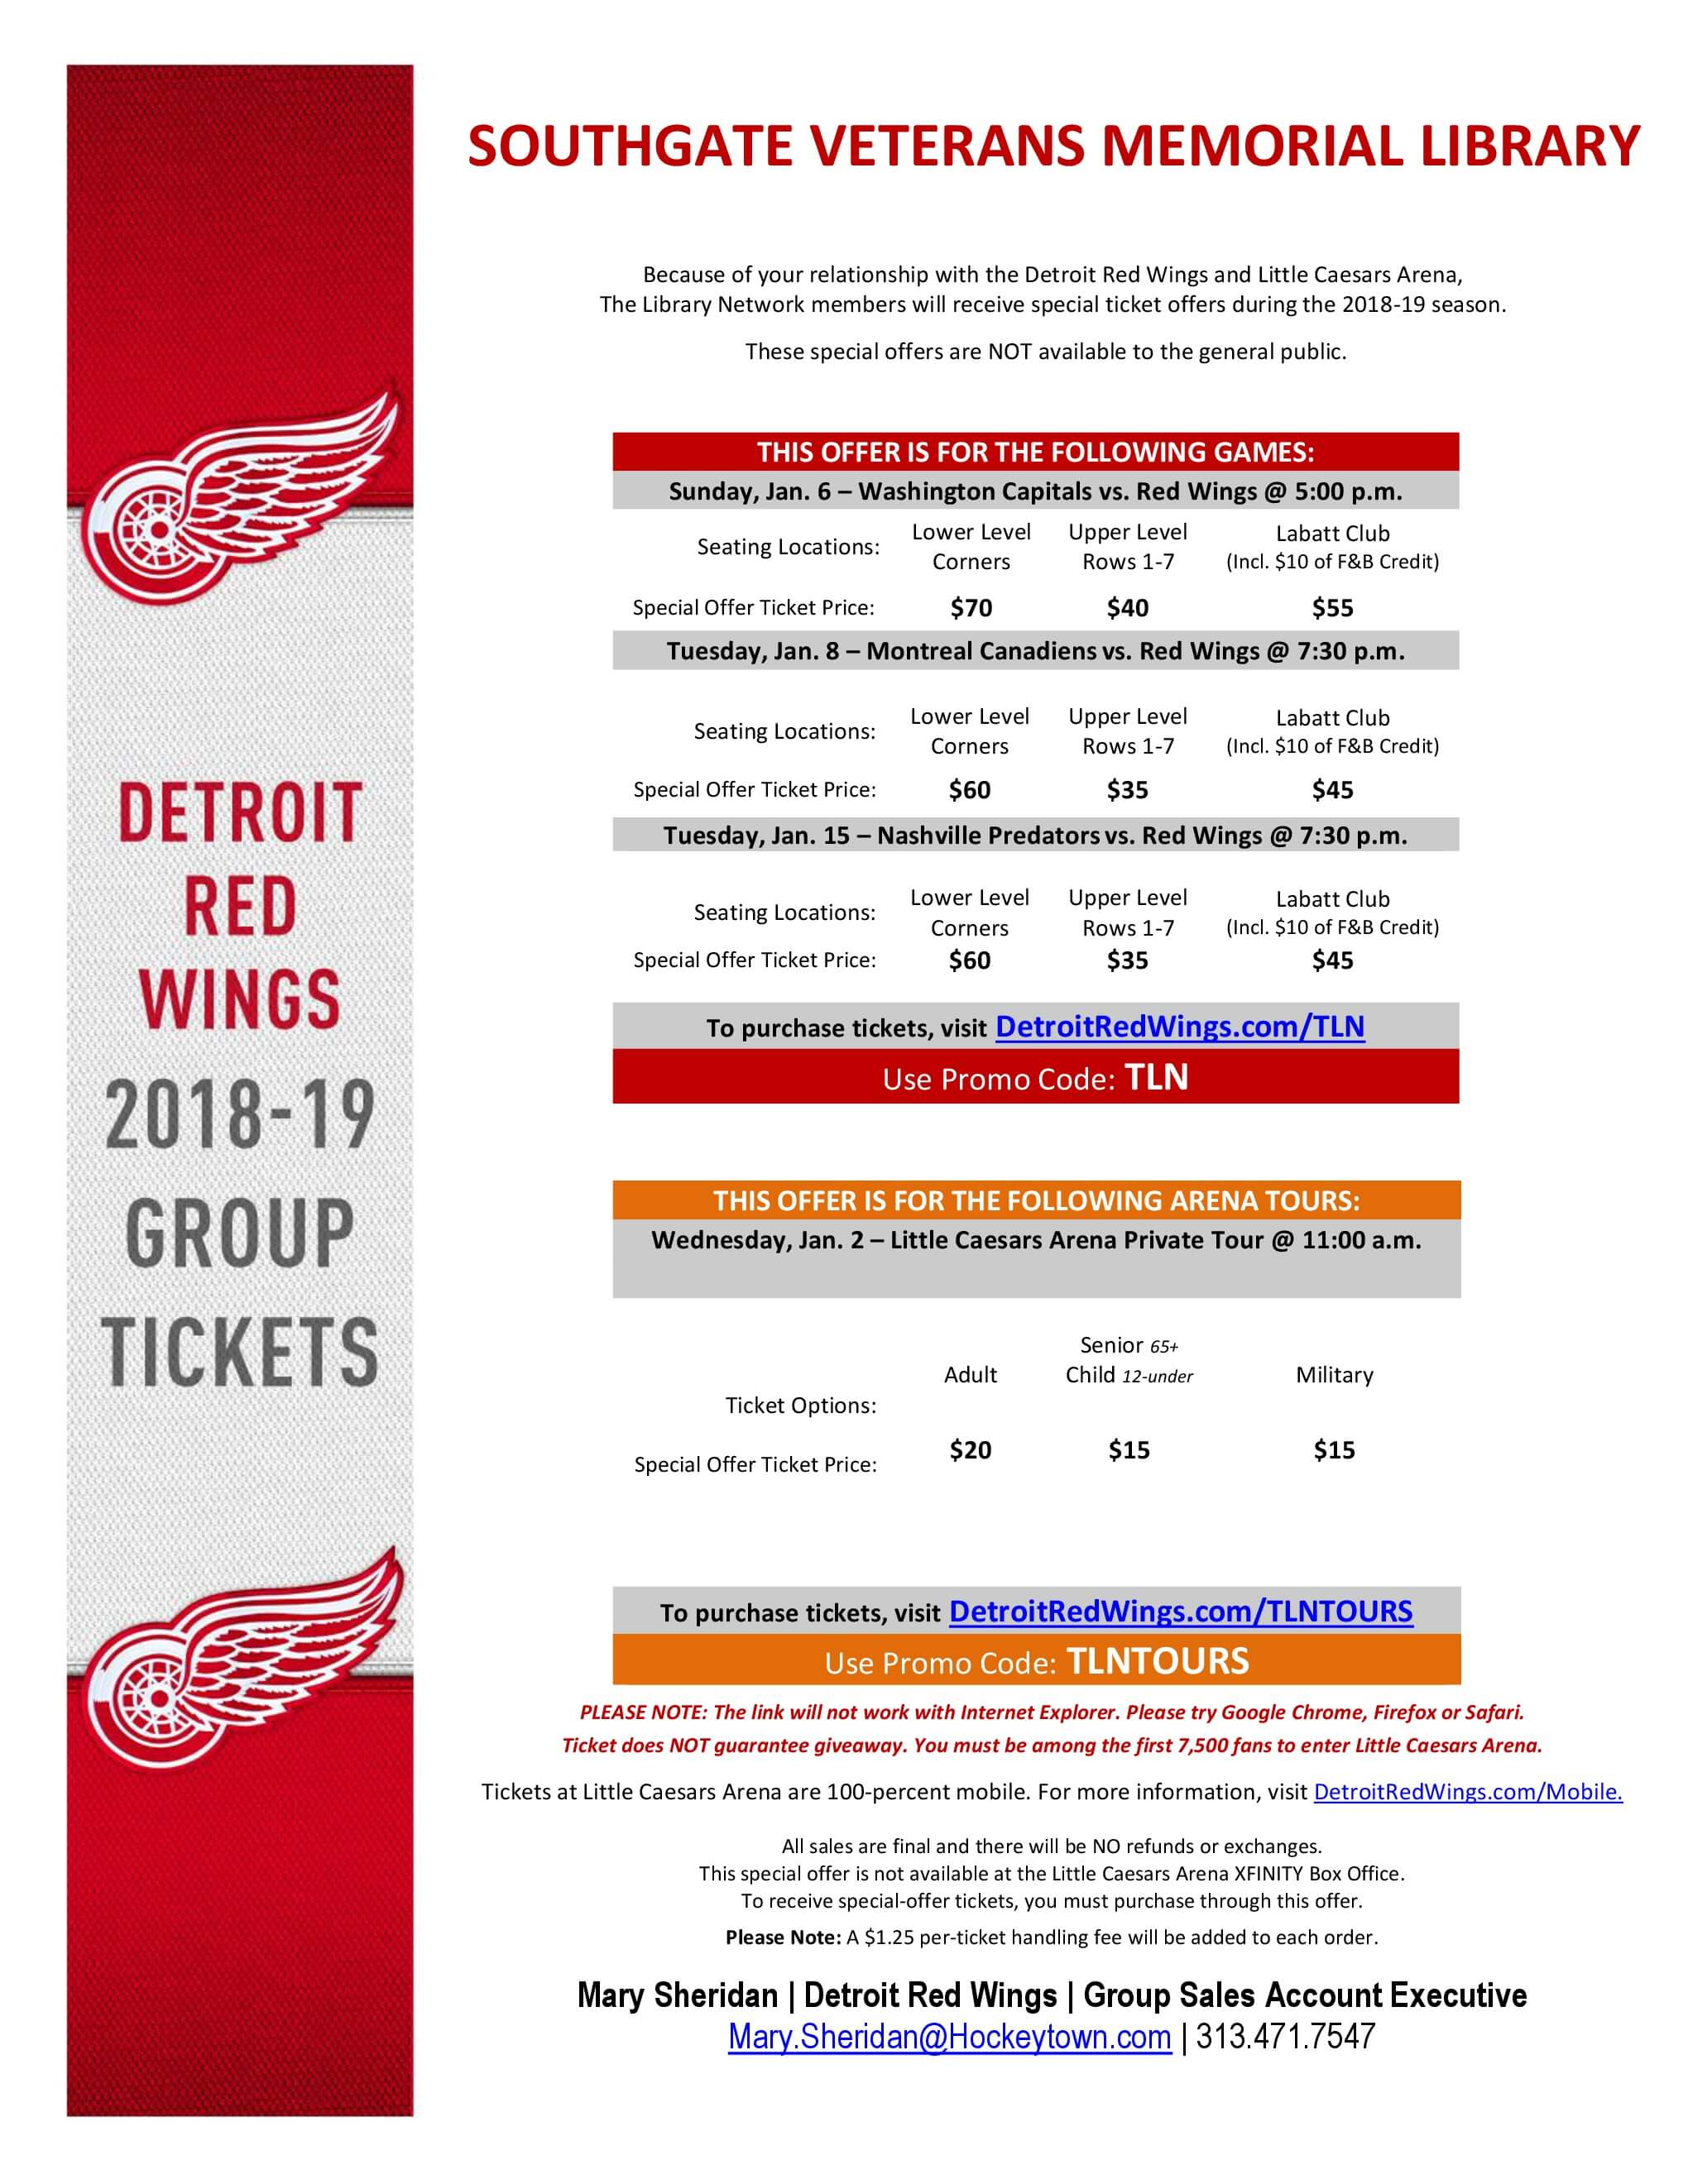 Flyer that reads:   Detroit Red Wings 2018-19 Group Tickets  SOUTHGATE VETERANS MEMORIAL LIBRARY Because of your relationship with the Detroit Red Wings and Little Caesars Arena, The Library Network members will receive special ticket offers during the 2018-19 season. These special offers are NOT available to the general public. THIS OFFER IS FOR THE FOLLOWING GAMES: Sunday, Jan. 6 – Washington Capitals vs. Red Wings @ 5:00 p.m. Seating Locations: Lower Level Corners Upper Level Rows 1-7 Labatt Club (Incl. $10 of F&B Credit) Special Offer Ticket Price: $70 $40 $55 Tuesday, Jan. 8 – Montreal Canadiens vs. Red Wings @ 7:30 p.m. Seating Locations: Lower Level Corners Upper Level Rows 1-7 Labatt Club (Incl. $10 of F&B Credit) Special Offer Ticket Price: $60 $35 $45 Tuesday, Jan. 15 – Nashville Predators vs. Red Wings @ 7:30 p.m. Seating Locations: Lower Level Corners Upper Level Rows 1-7 Labatt Club (Incl. $10 of F&B Credit) Special Offer Ticket Price: $60 $35 $45 To purchase tickets, visit DetroitRedWings.com/TLN Use Promo Code: TLN THIS OFFER IS FOR THE FOLLOWING ARENA TOURS: Wednesday, Jan. 2 – Little Caesars Arena Private Tour @ 11:00 a.m. Ticket Options: Adult Senior 65+ Child 12-under Military Special Offer Ticket Price: $20 $15 $15 To purchase tickets, visit DetroitRedWings.com/TLNTOURS Use Promo Code: TLNTOURS PLEASE NOTE: The link will not work with Internet Explorer. Please try Google Chrome, Firefox or Safari. Ticket does NOT guarantee giveaway. You must be among the first 7,500 fans to enter Little Caesars Arena. Tickets at Little Caesars Arena are 100-percent mobile. For more information, visit DetroitRedWings.com/Mobile. All sales are final and there will be NO refunds or exchanges. This special offer is not available at the Little Caesars Arena XFINITY Box Office. To receive special-offer tickets, you must purchase through this offer. Please Note: A $1.25 per-ticket handling fee will be added to each order. Mary Sheridan | Detroit Red Wings | Group Sales Account Executive Mary.Sheridan@Hockeytown.com | 313.471.7547